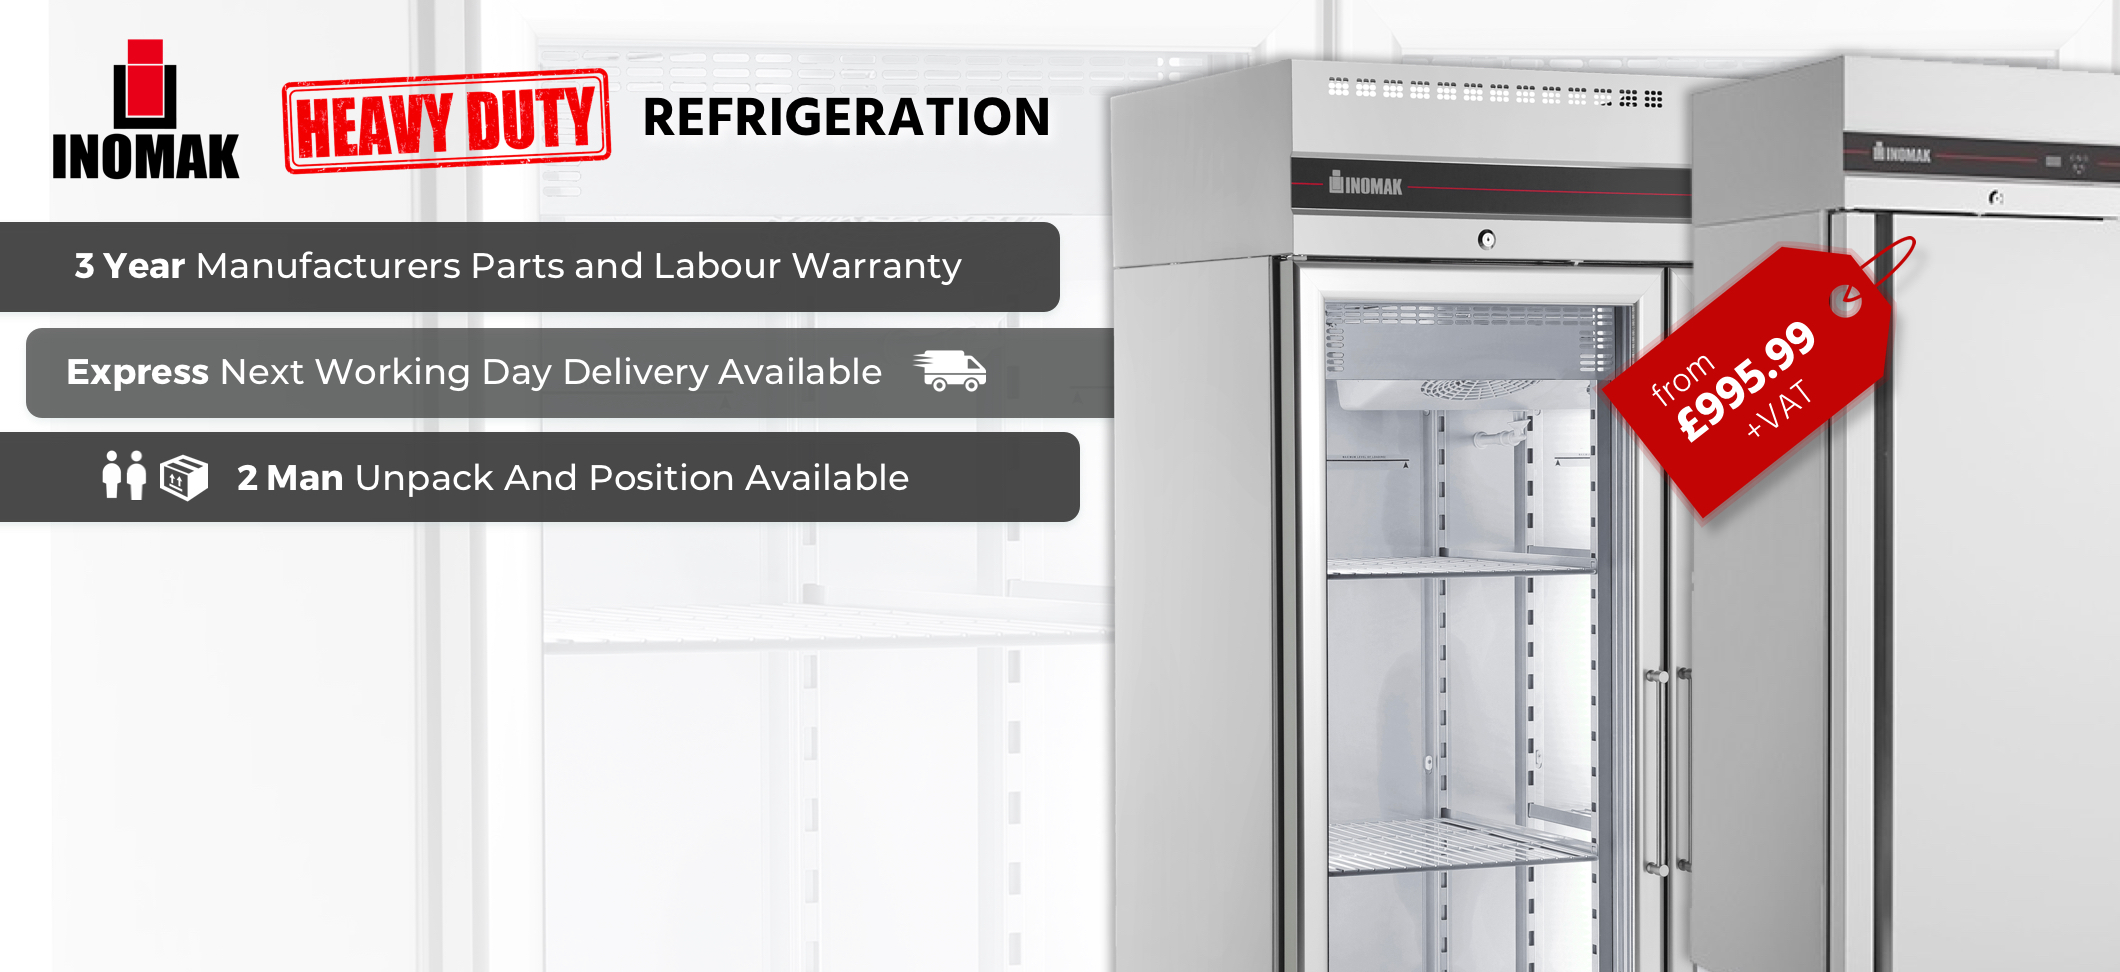 Inomak heavy Duty Refrigeration